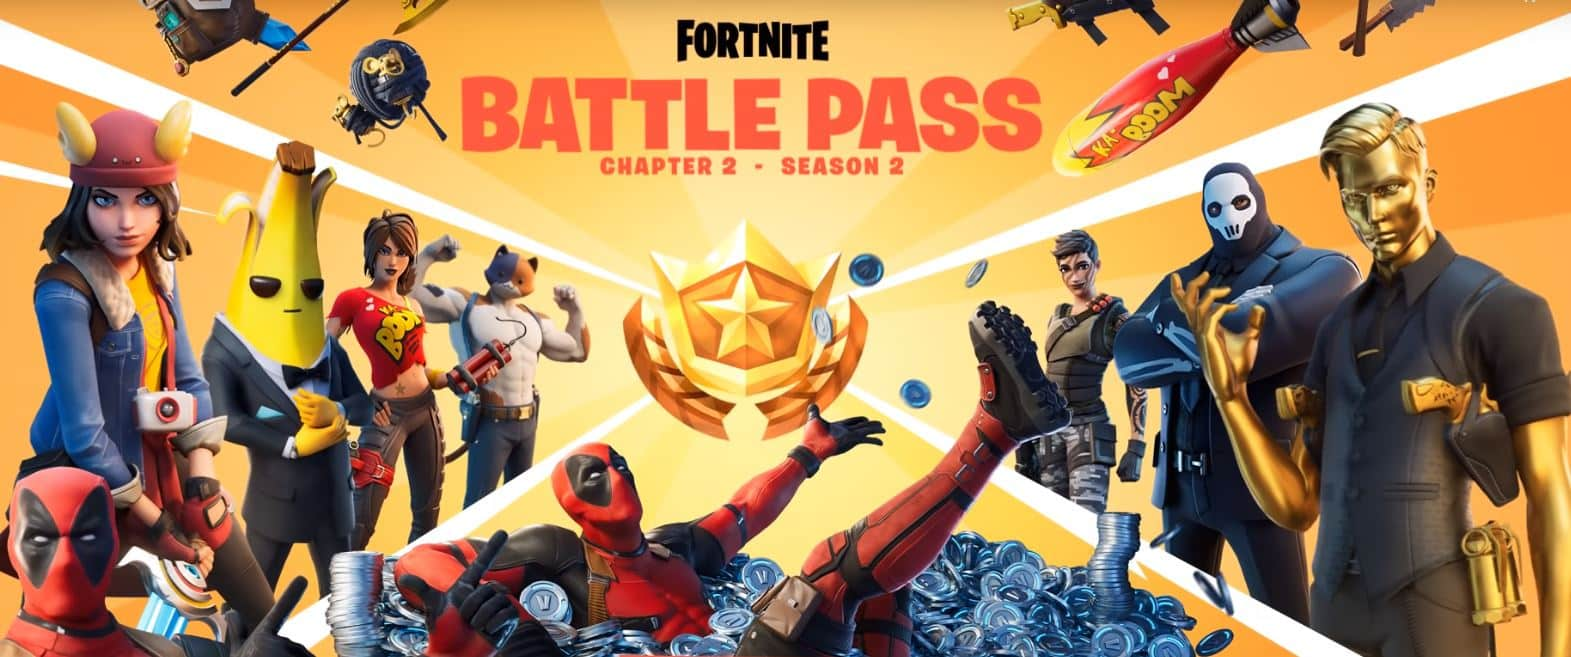 Fortnite_Season_2_Chapter_2_Battle_Pass_Cover